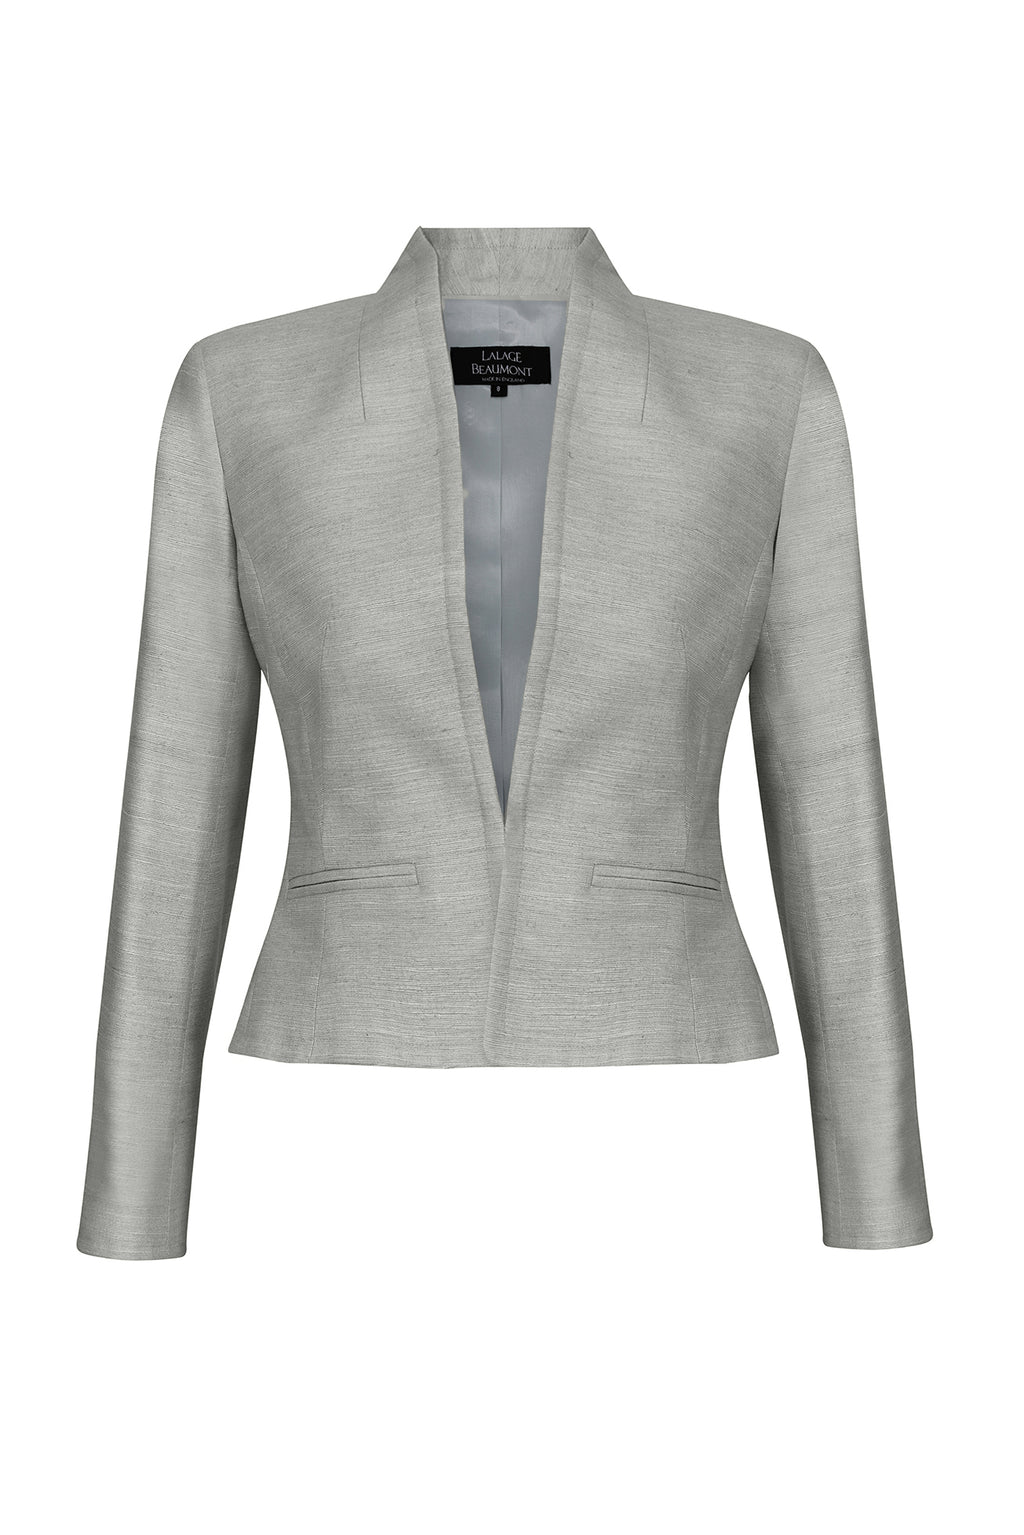 Silk jacket in stone coloured raw silk - Margo